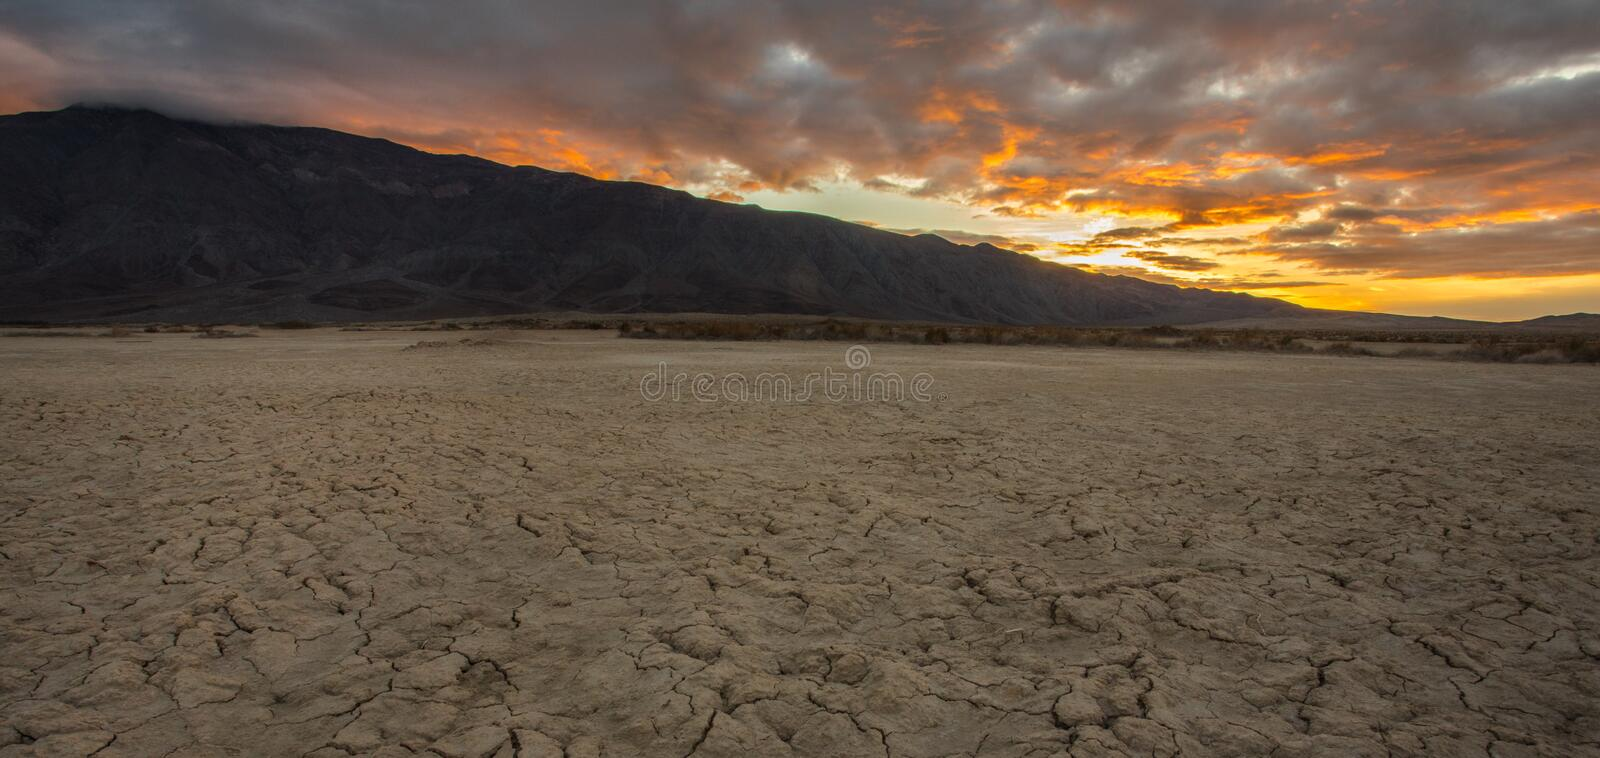 Dry Lake Bed. Sunrise Over Santa Rosa Mountains With Dry Lake Clark In Foreground, Anza Borrego Desert State Park, California stock images